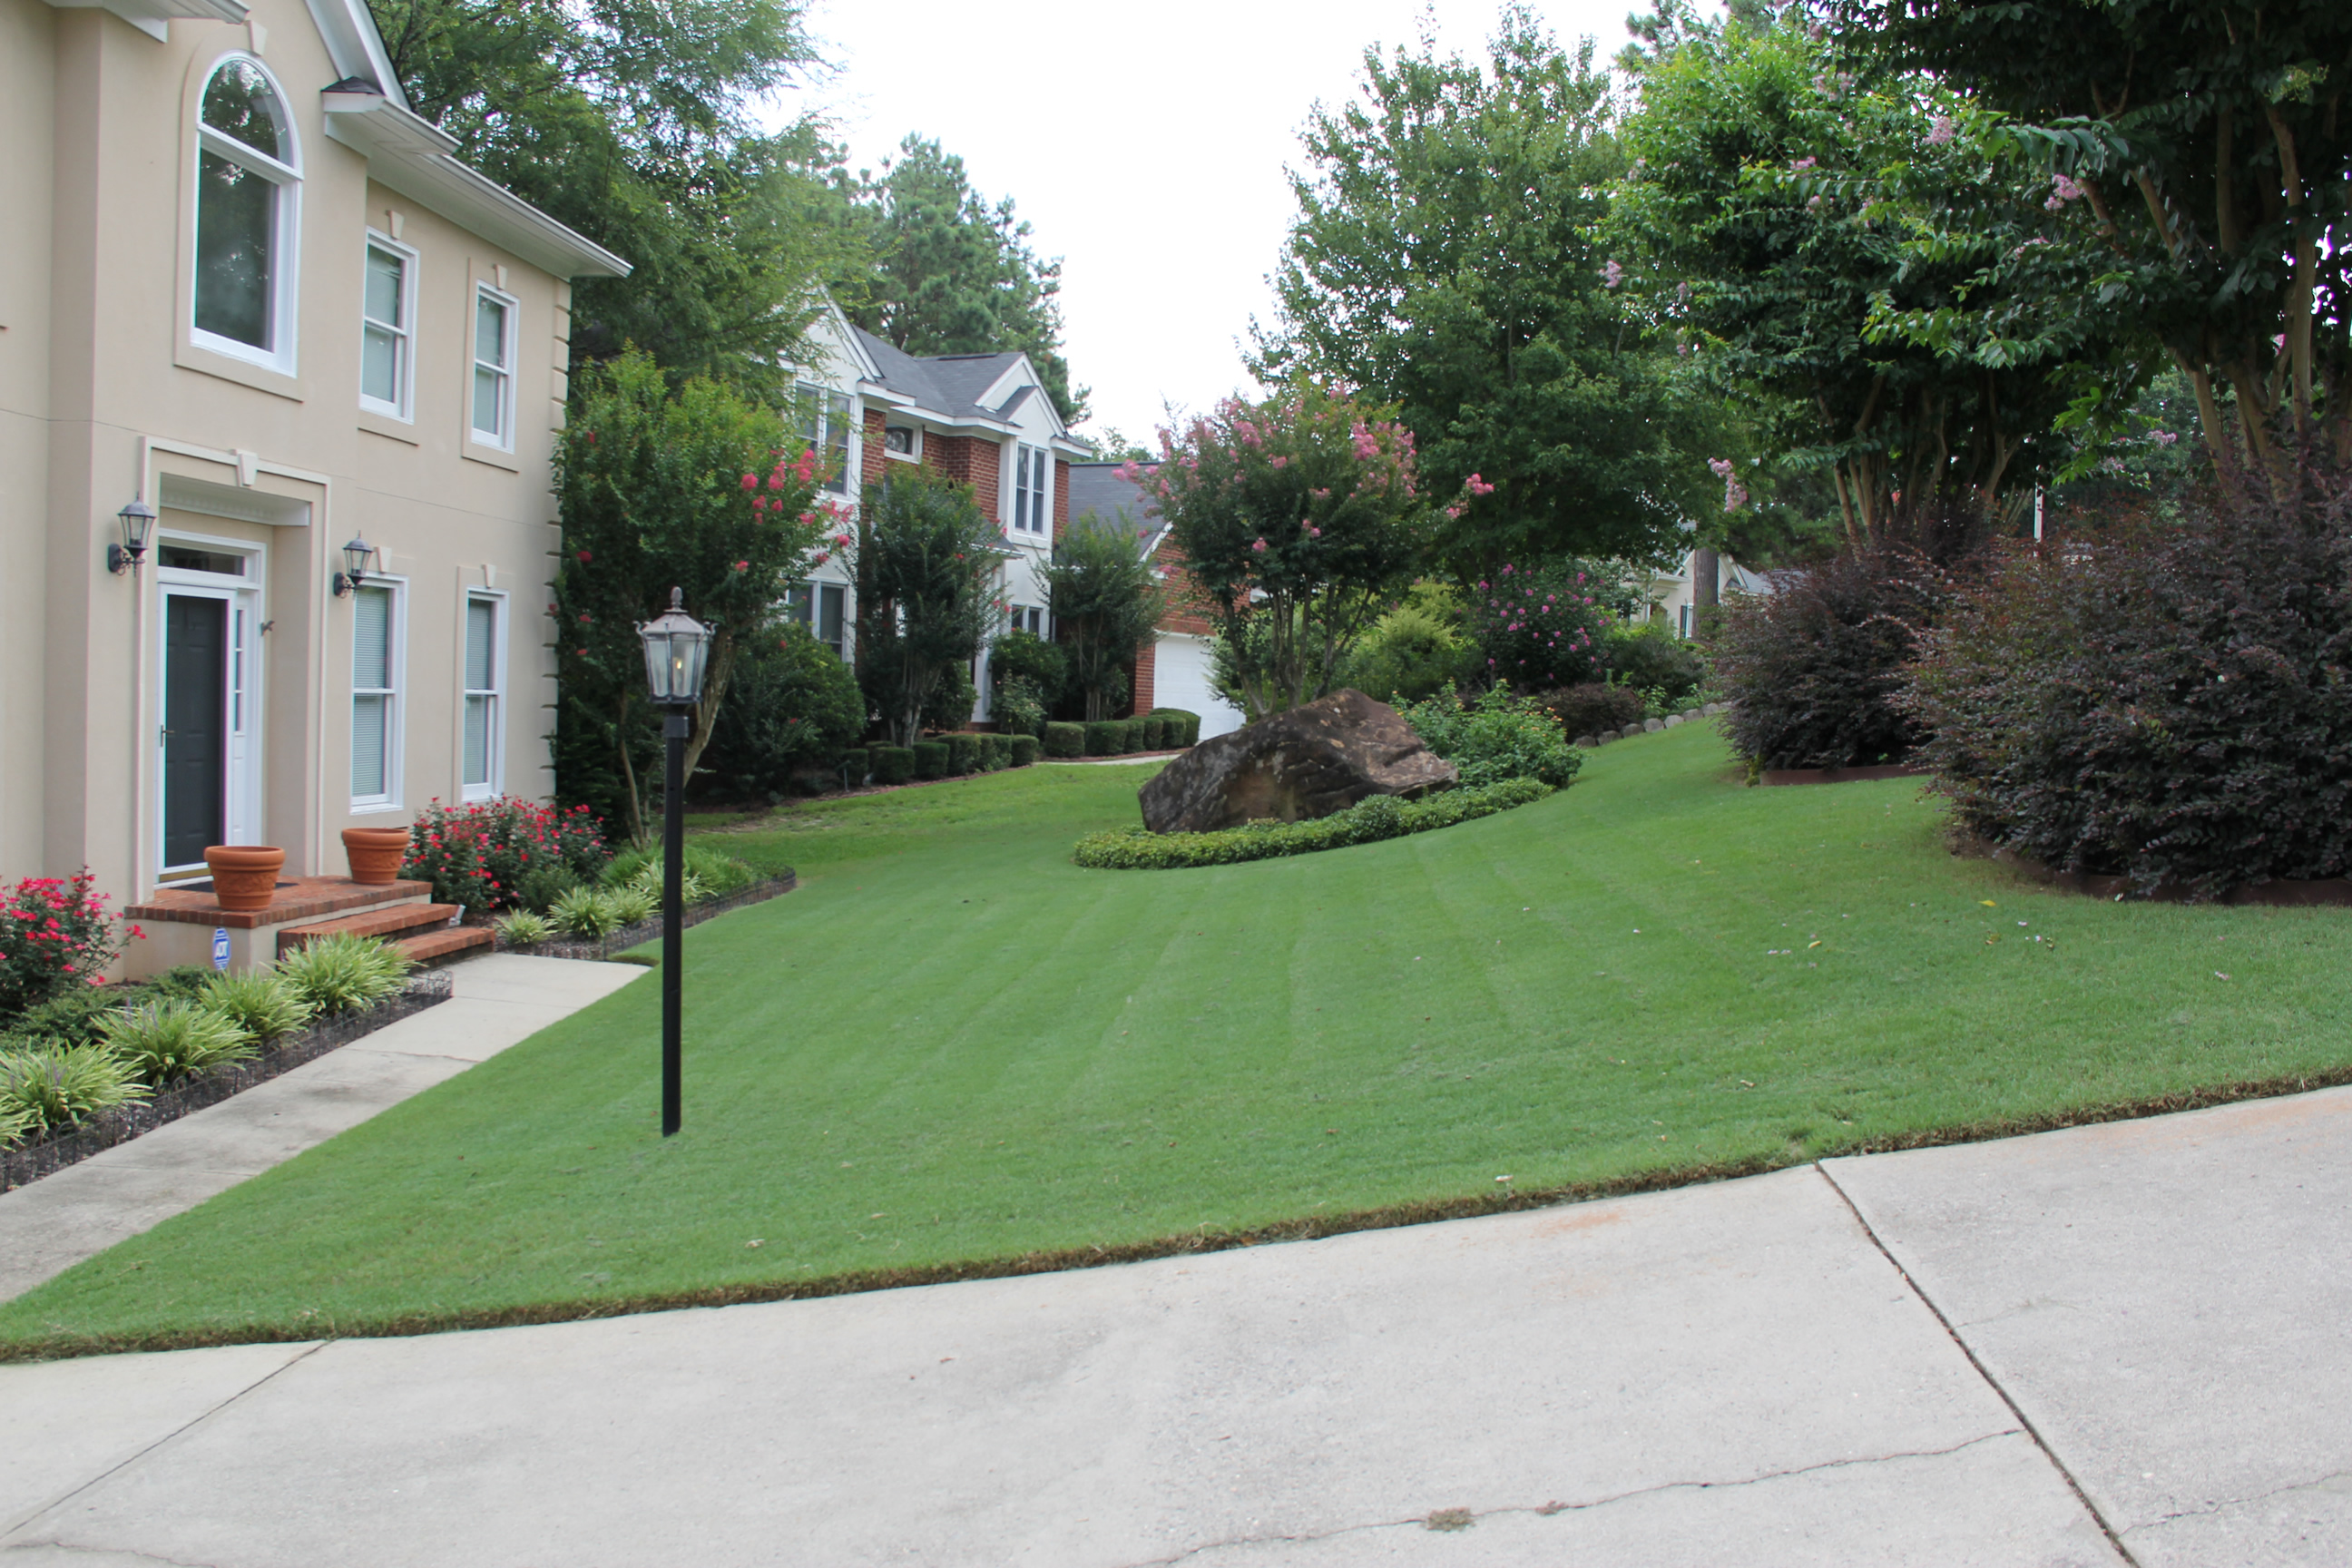 sod irrigation installation landscaping lawn care and